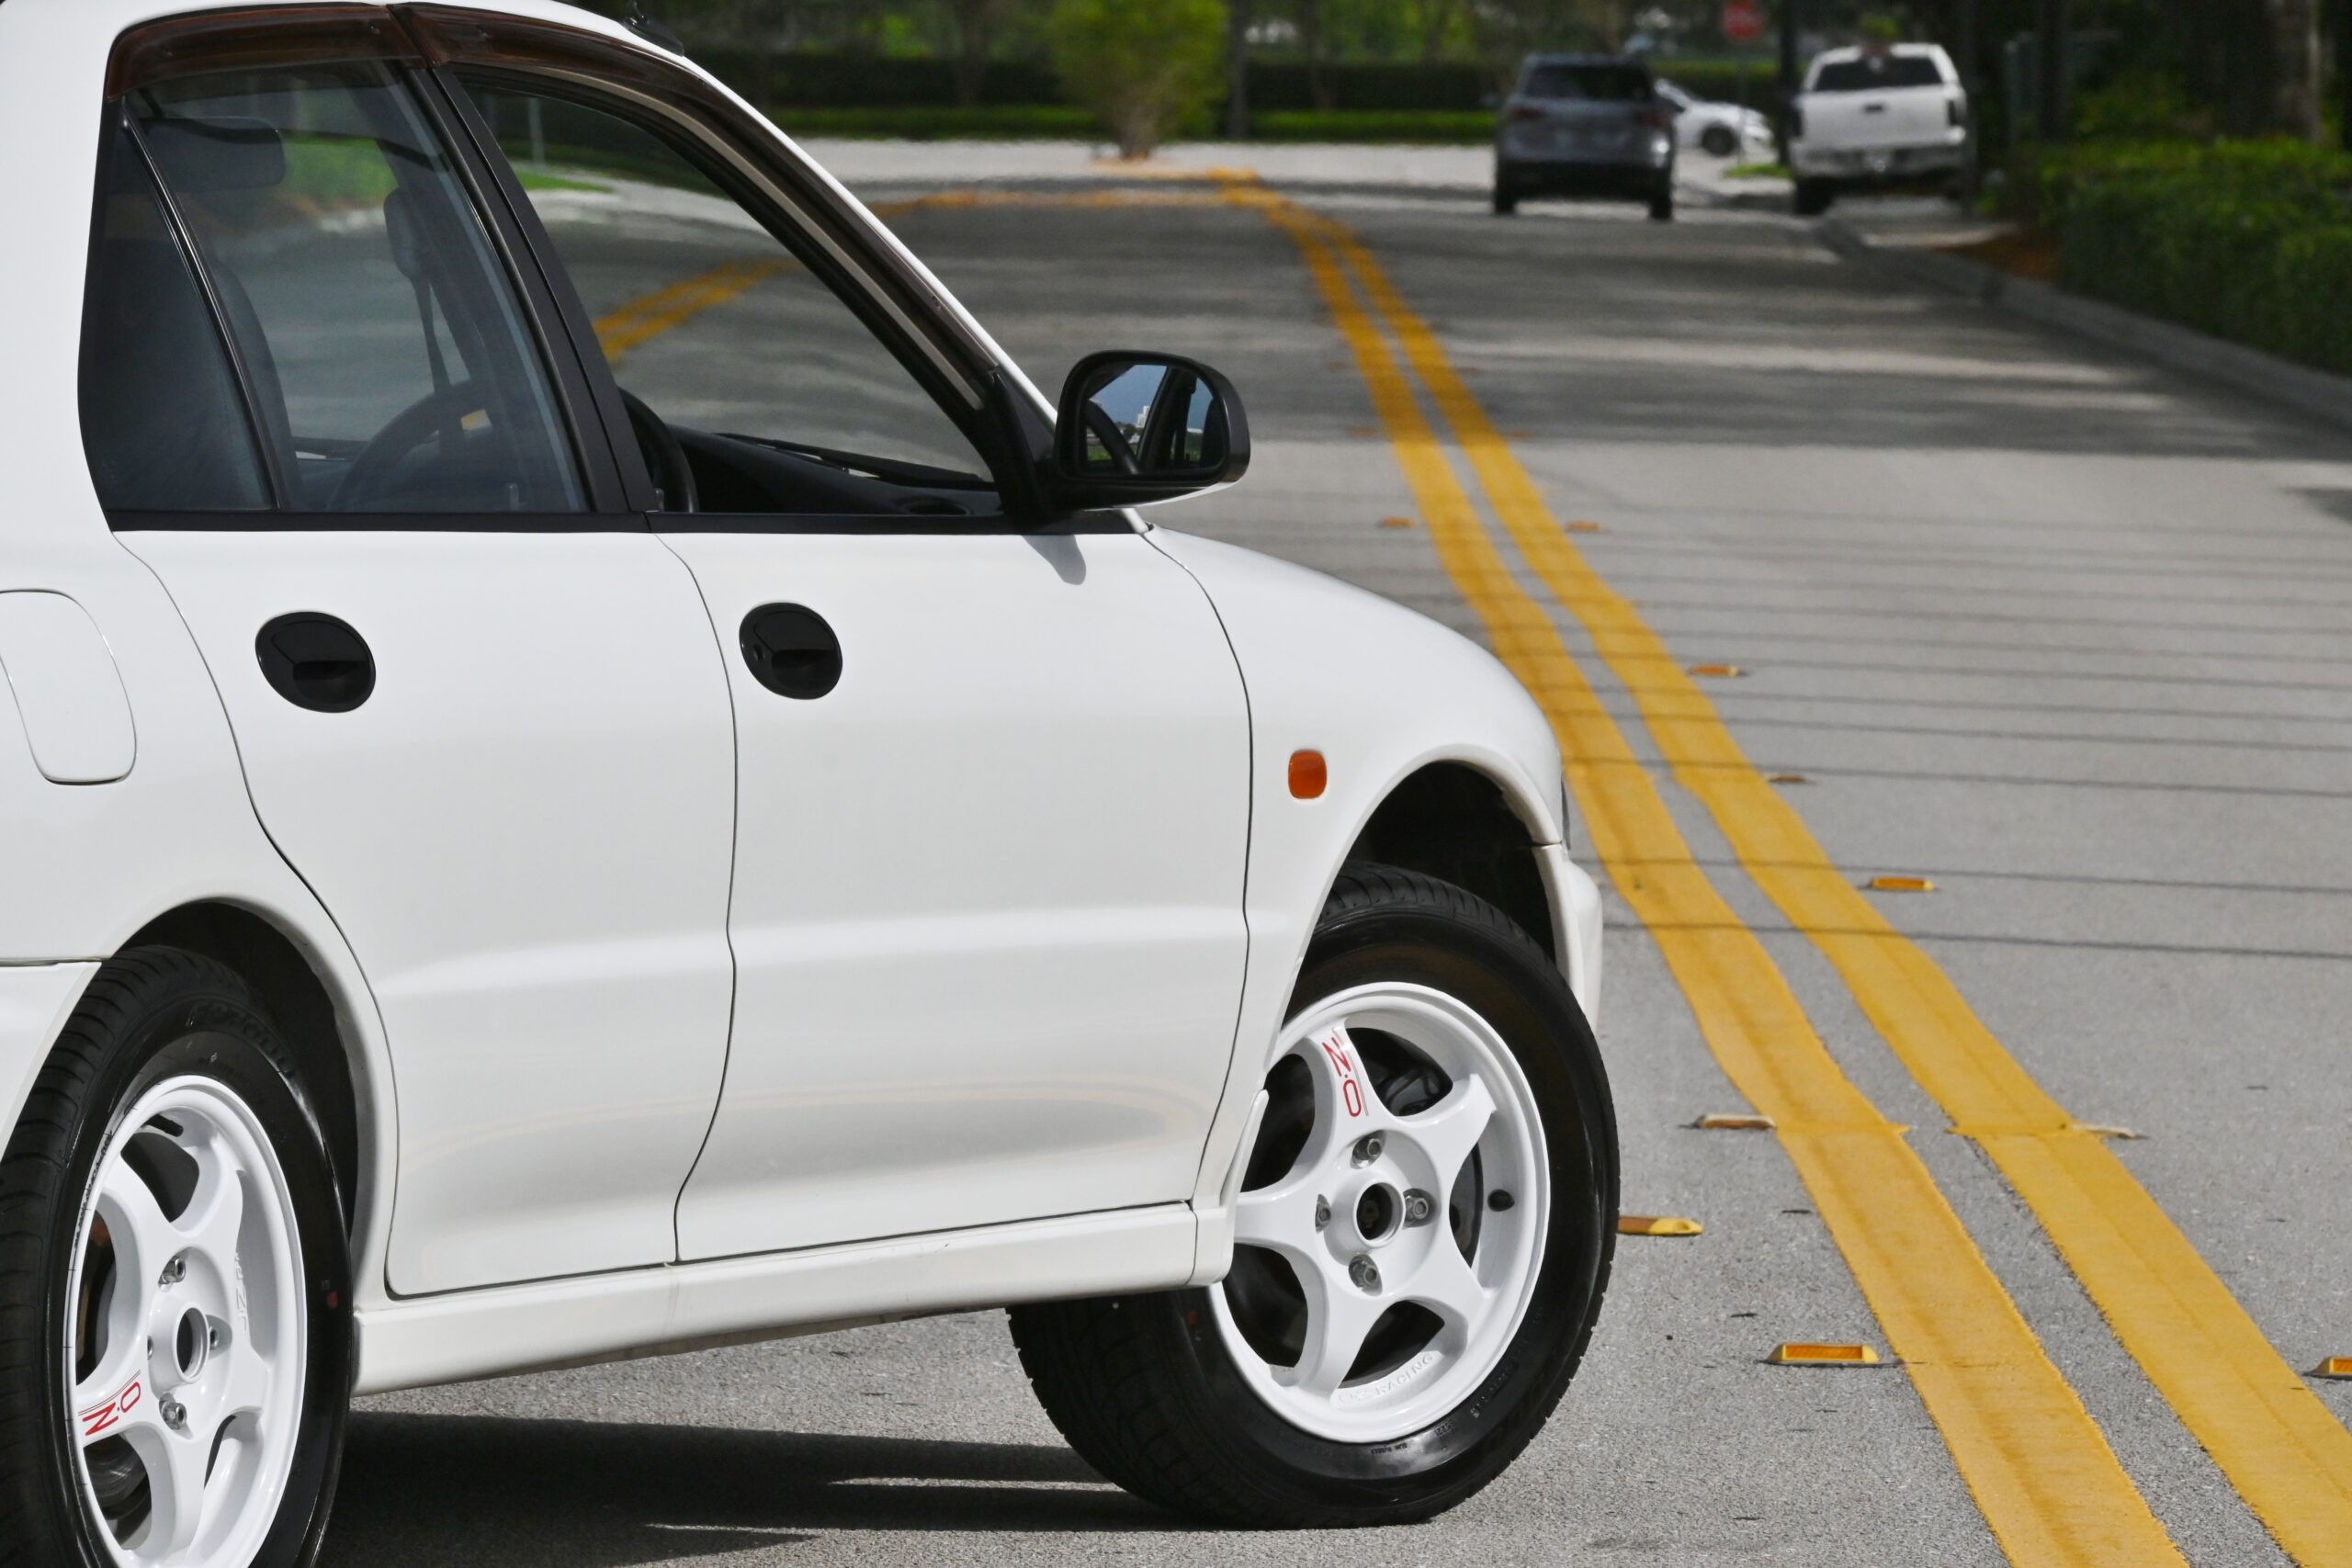 1994 Mitsubishi Evolution 2 RS Lightweight Rally Spec – OZ racing wheels – JDM – Ice Cold AC- Timing Belt Done